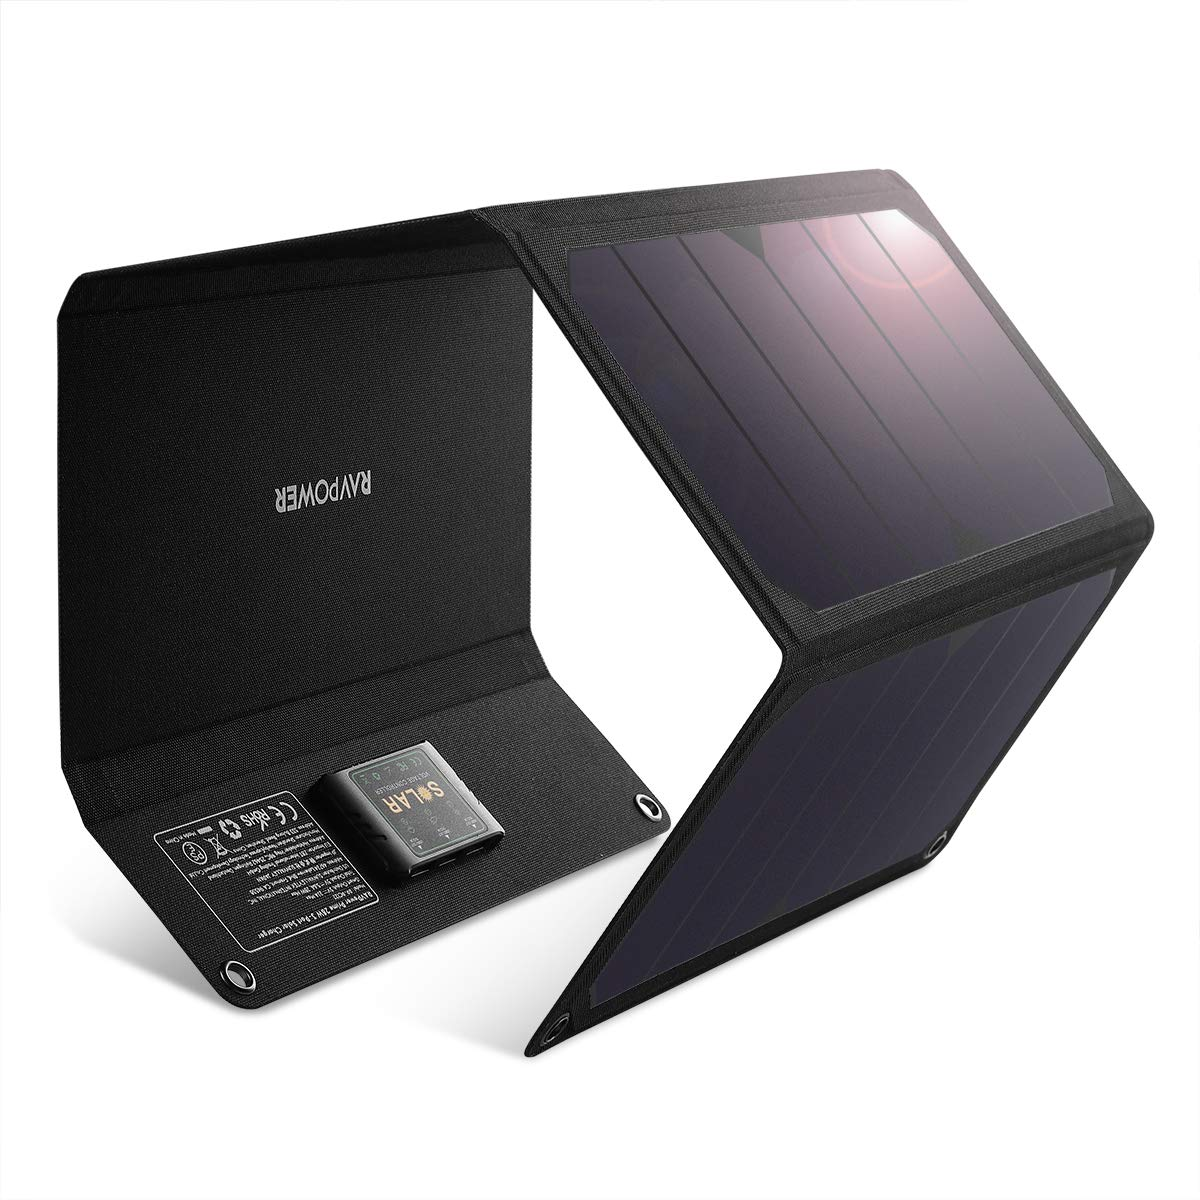 RAVPower Solar Charger 28W Solar Panel with Dual USB Port Waterproof Foldable Camping Travel Charger Compatible iPhone Xs XS Max XR X 8 7 Plus, iPad, Galaxy S9 S8 Edge Plus, Note, LG, Nexus and More by RAVPower